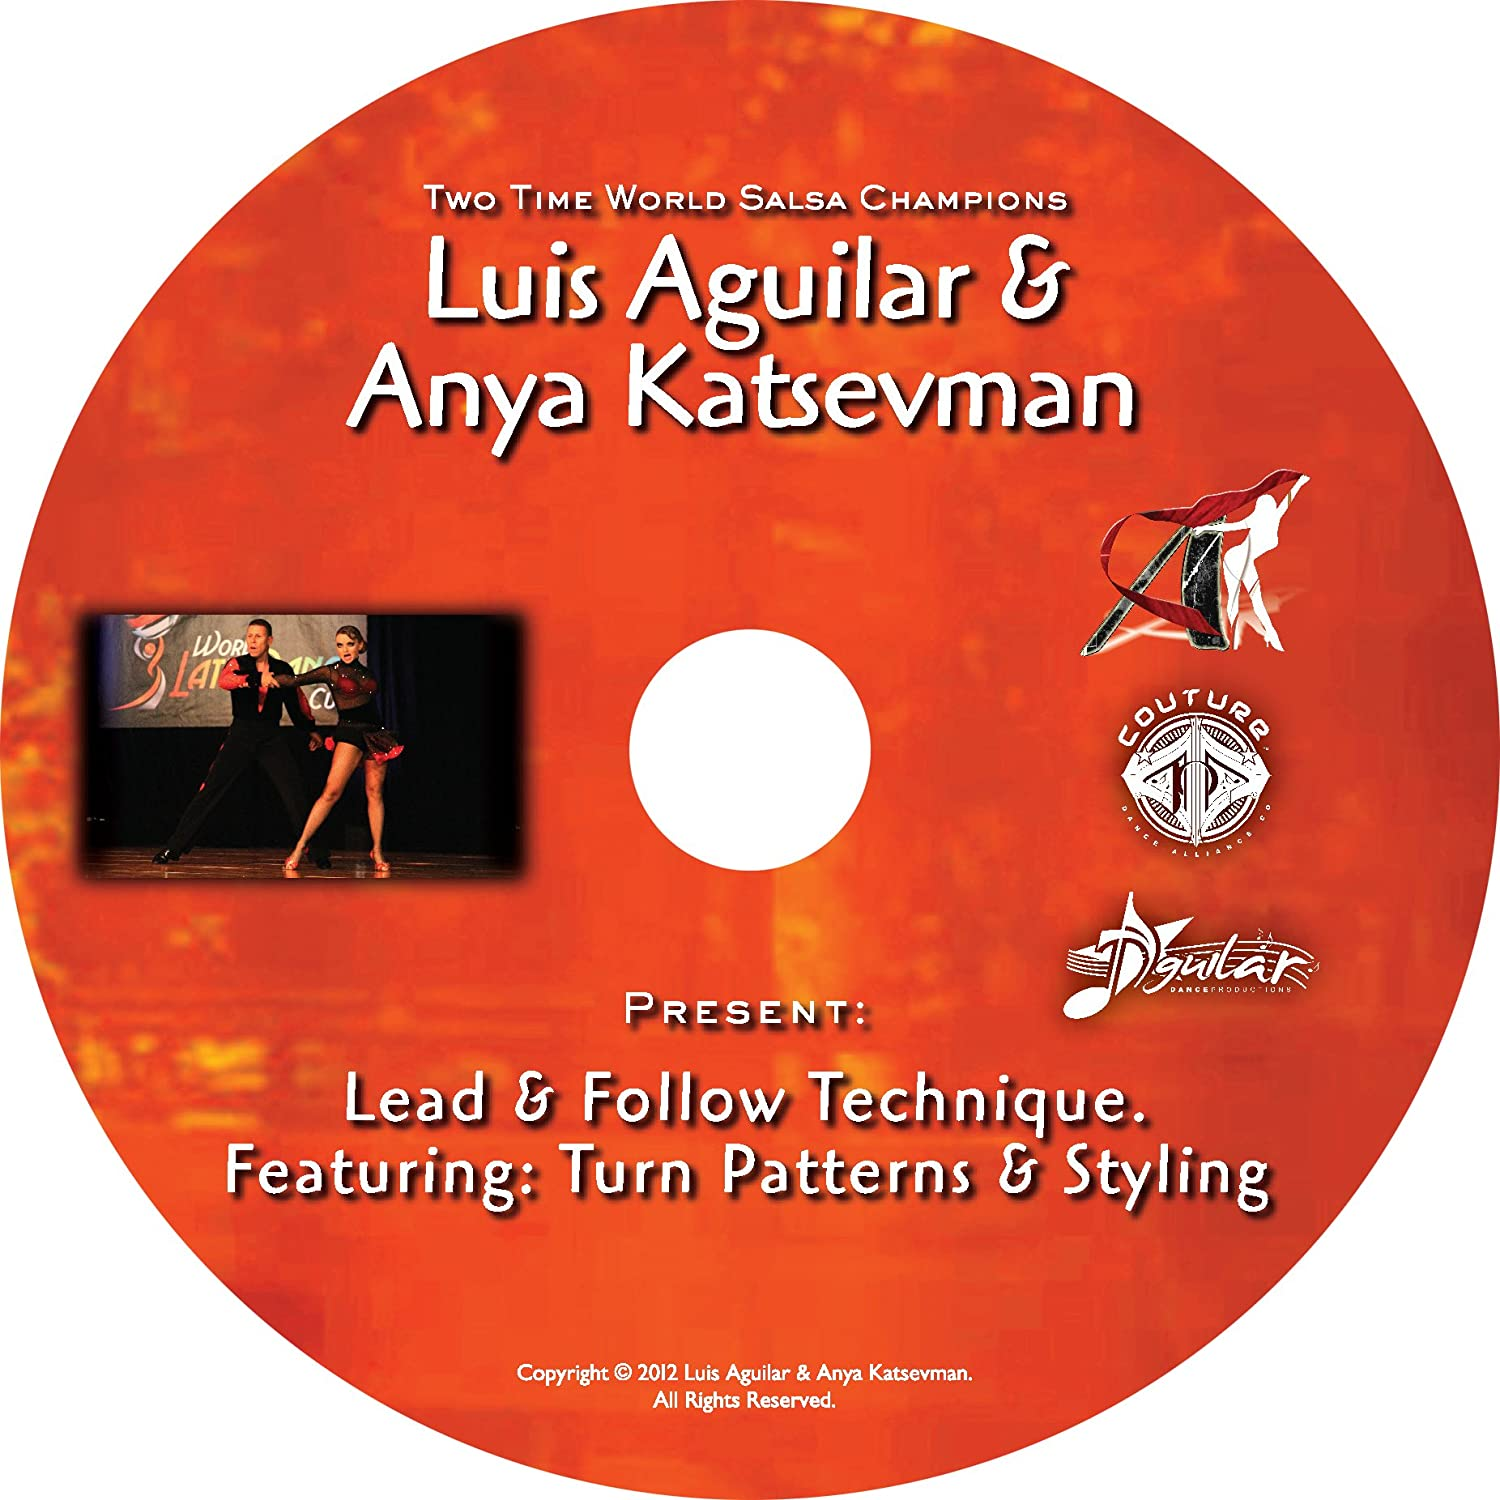 Amazon.com: Two Time World Salsa Champions, Luis Aguilar & Anya Katsevman, Lead & Follow. Featuring: Turn-patterns & Styling.: Luis Aguilar, Anya Katsevman: ...